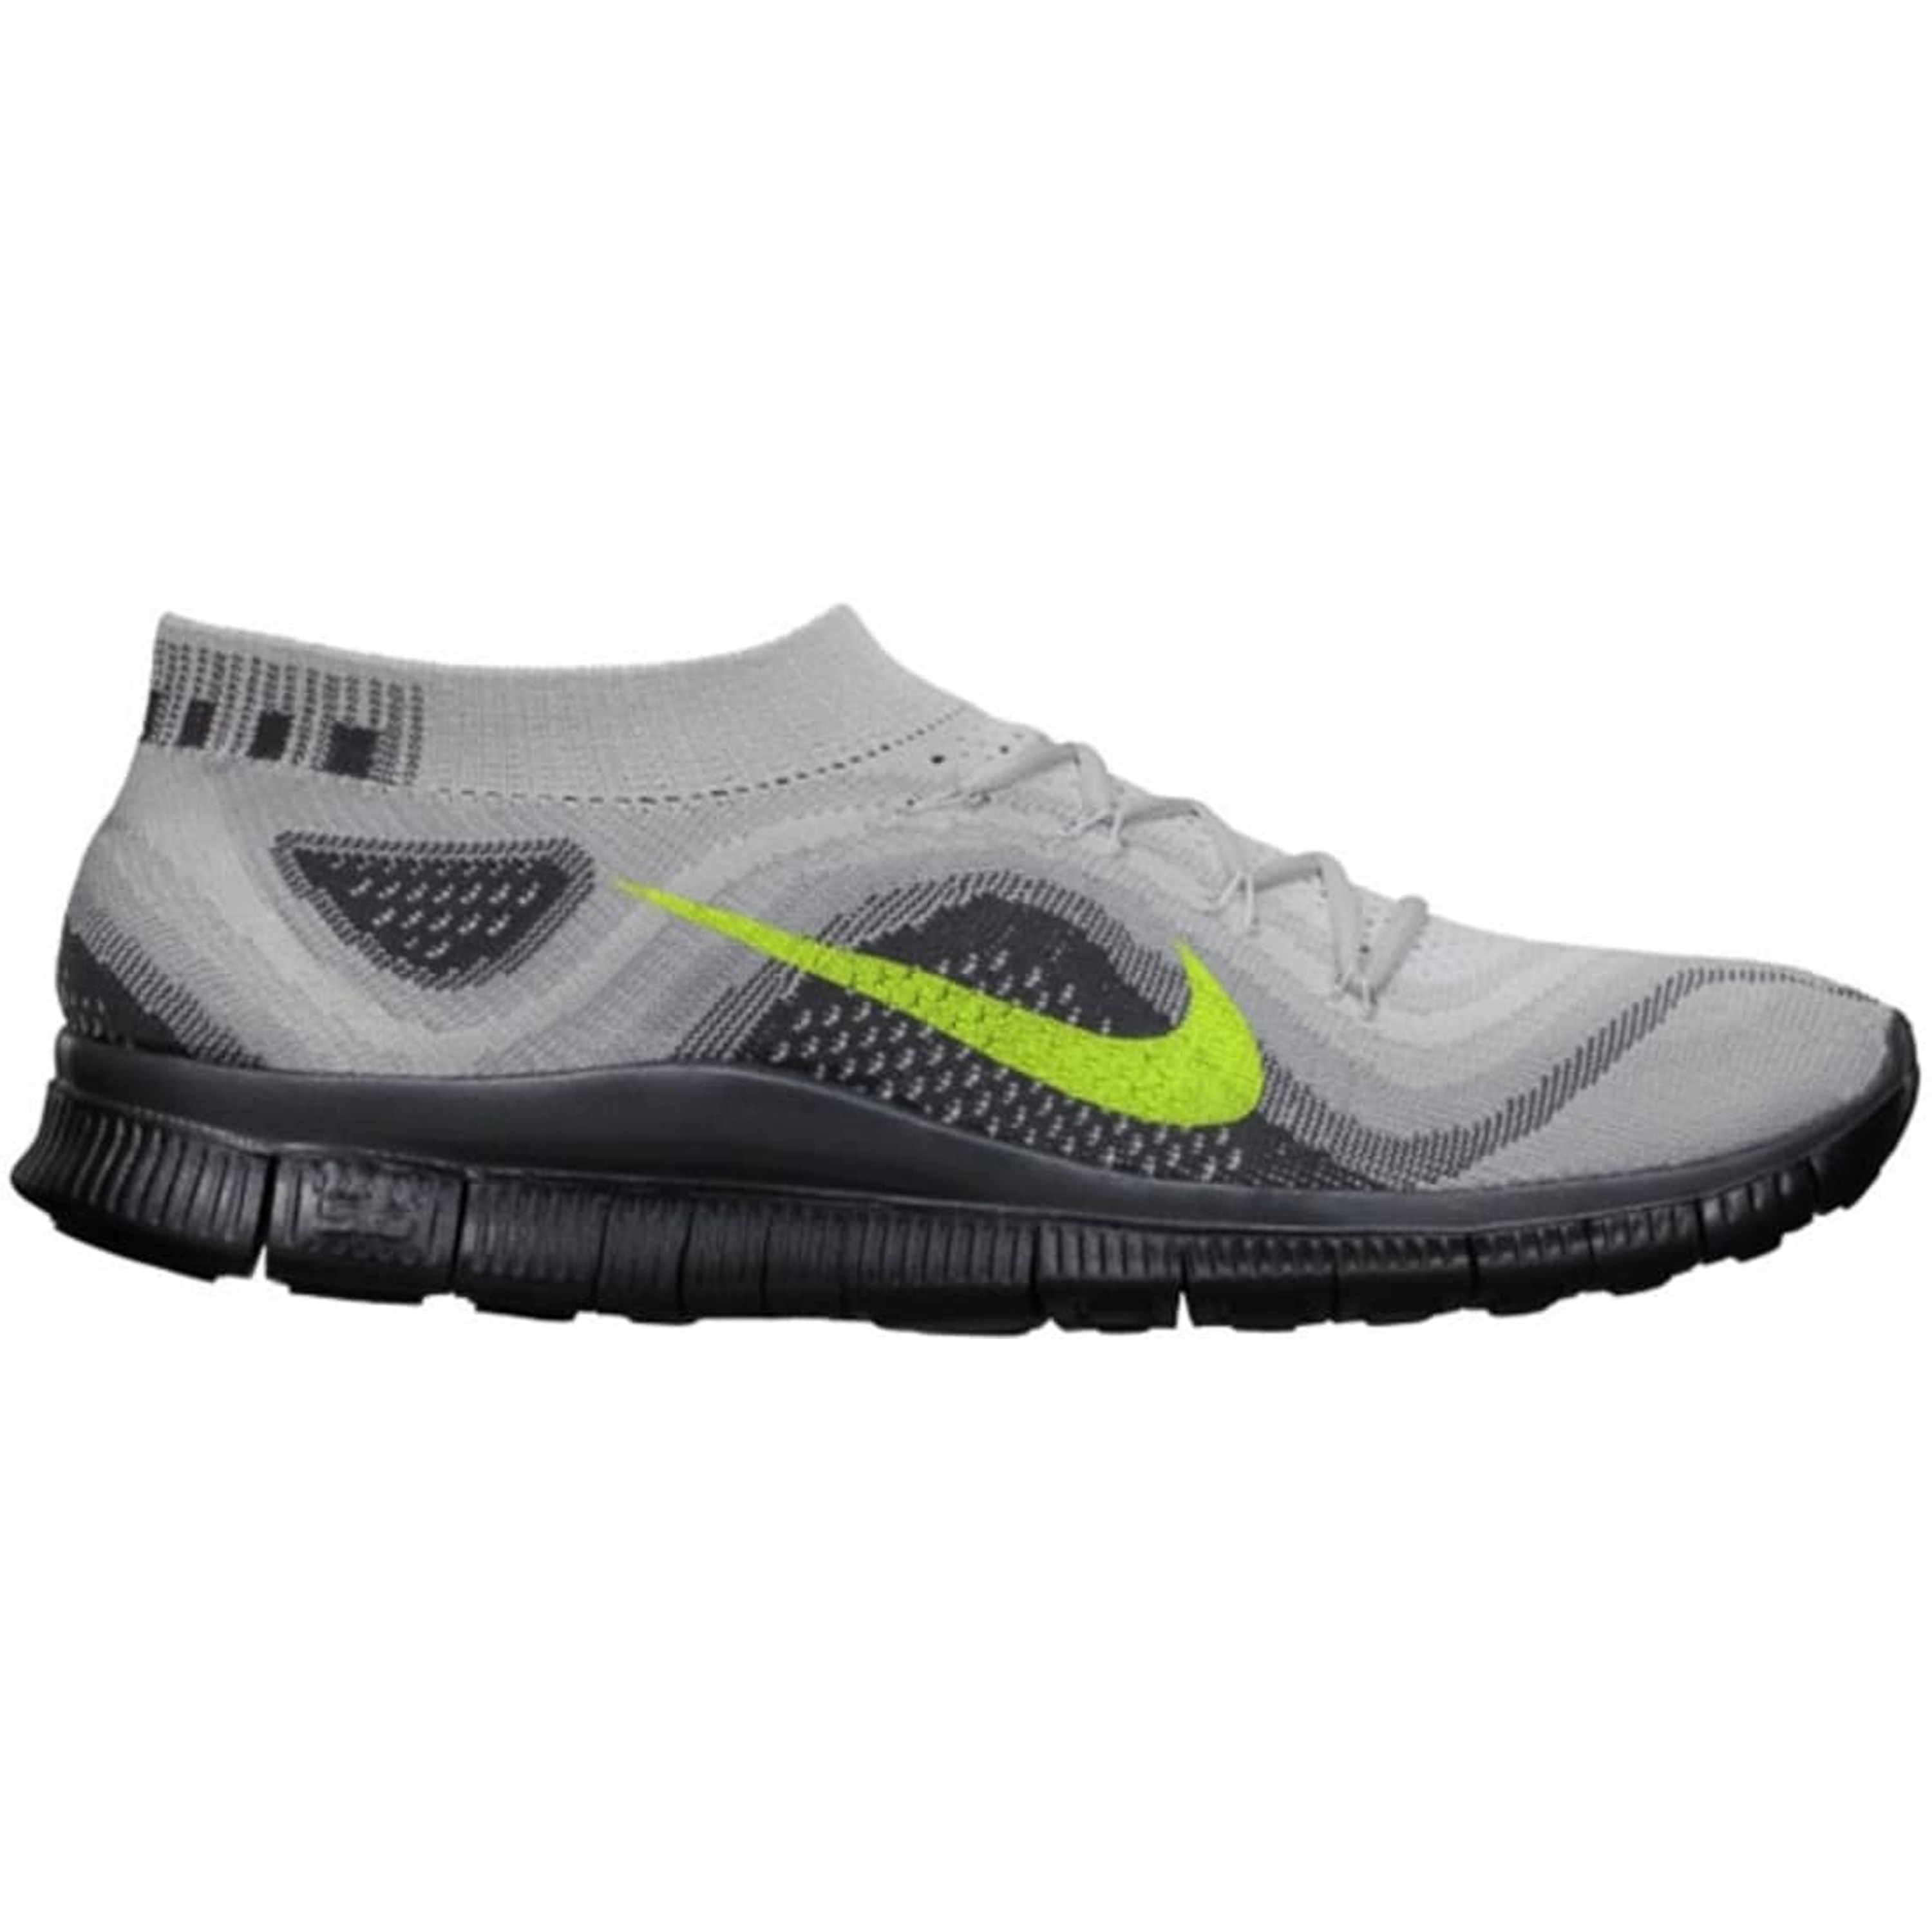 Nike Free Flyknit Pure Platinum Volt (615805-070)